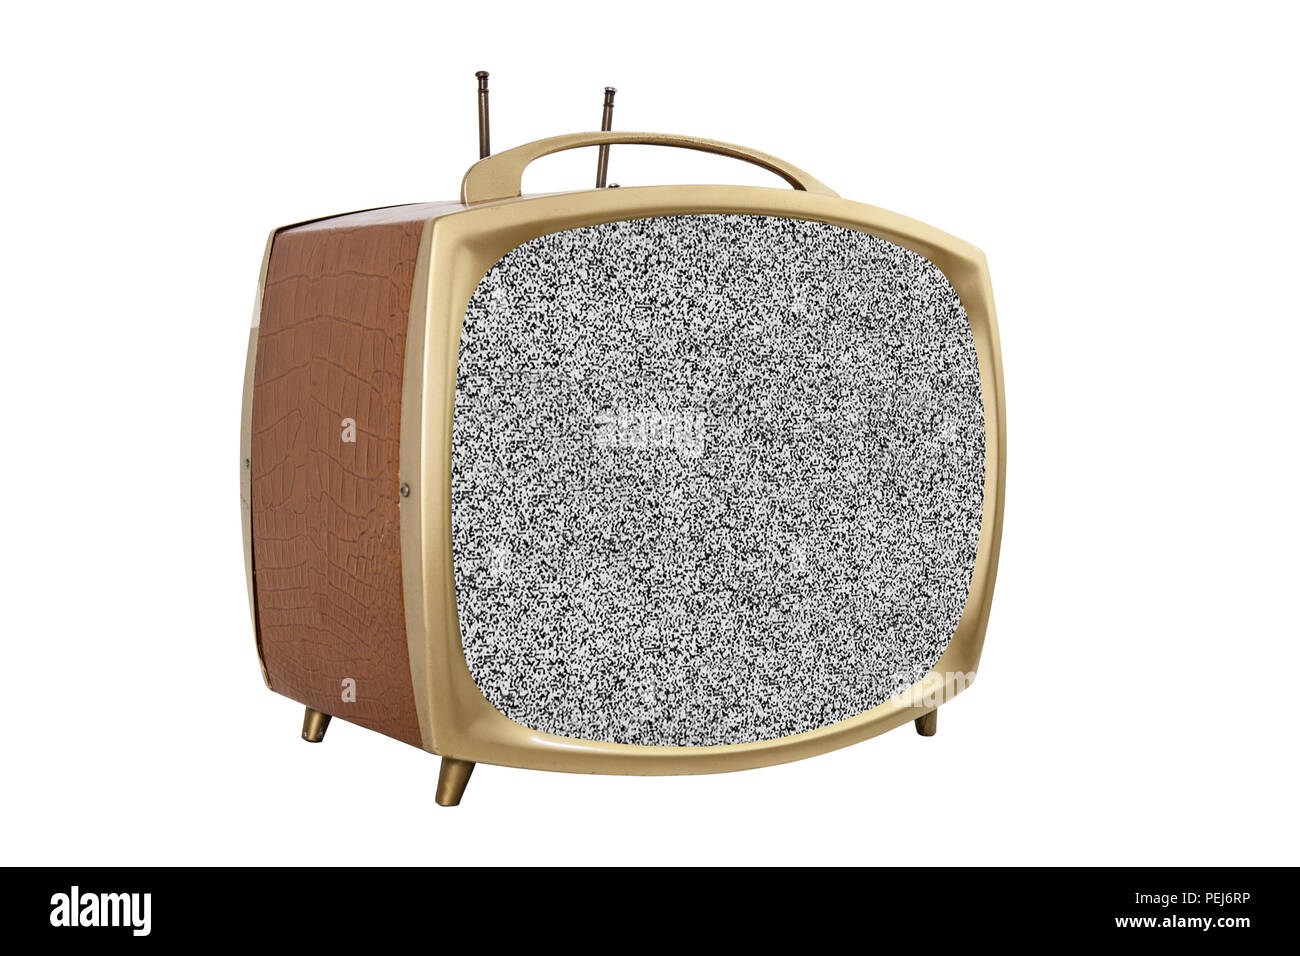 Retro 1950s portable television with static screen. - Stock Image